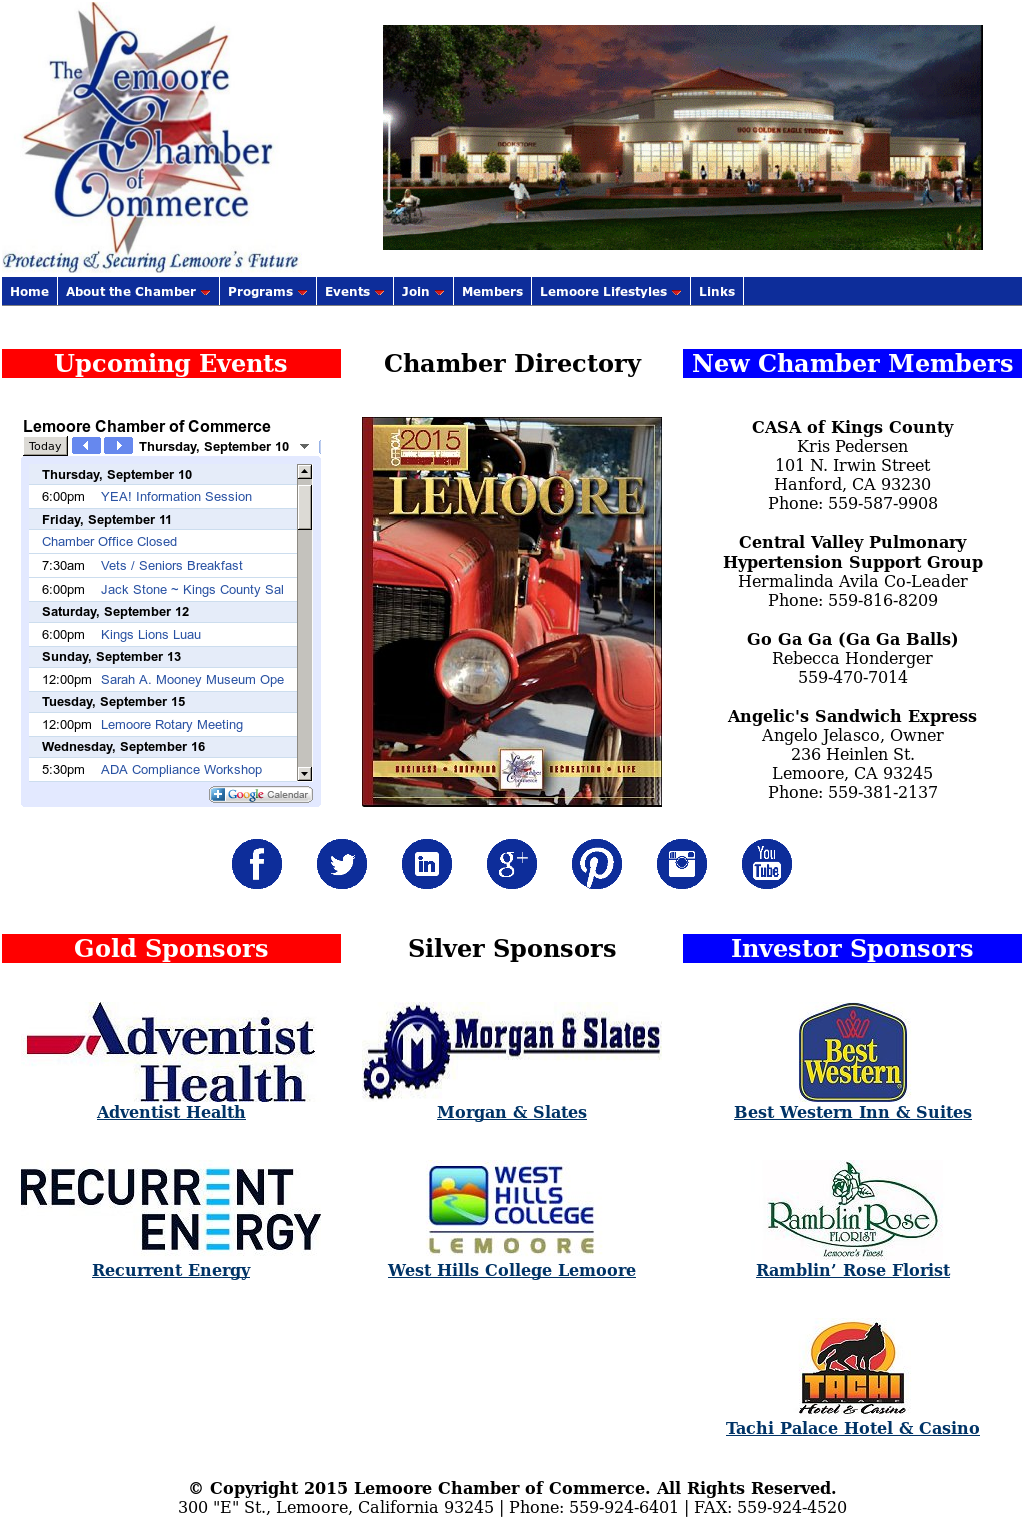 Lemoore Chamber Of Commerce Competitors, Revenue and